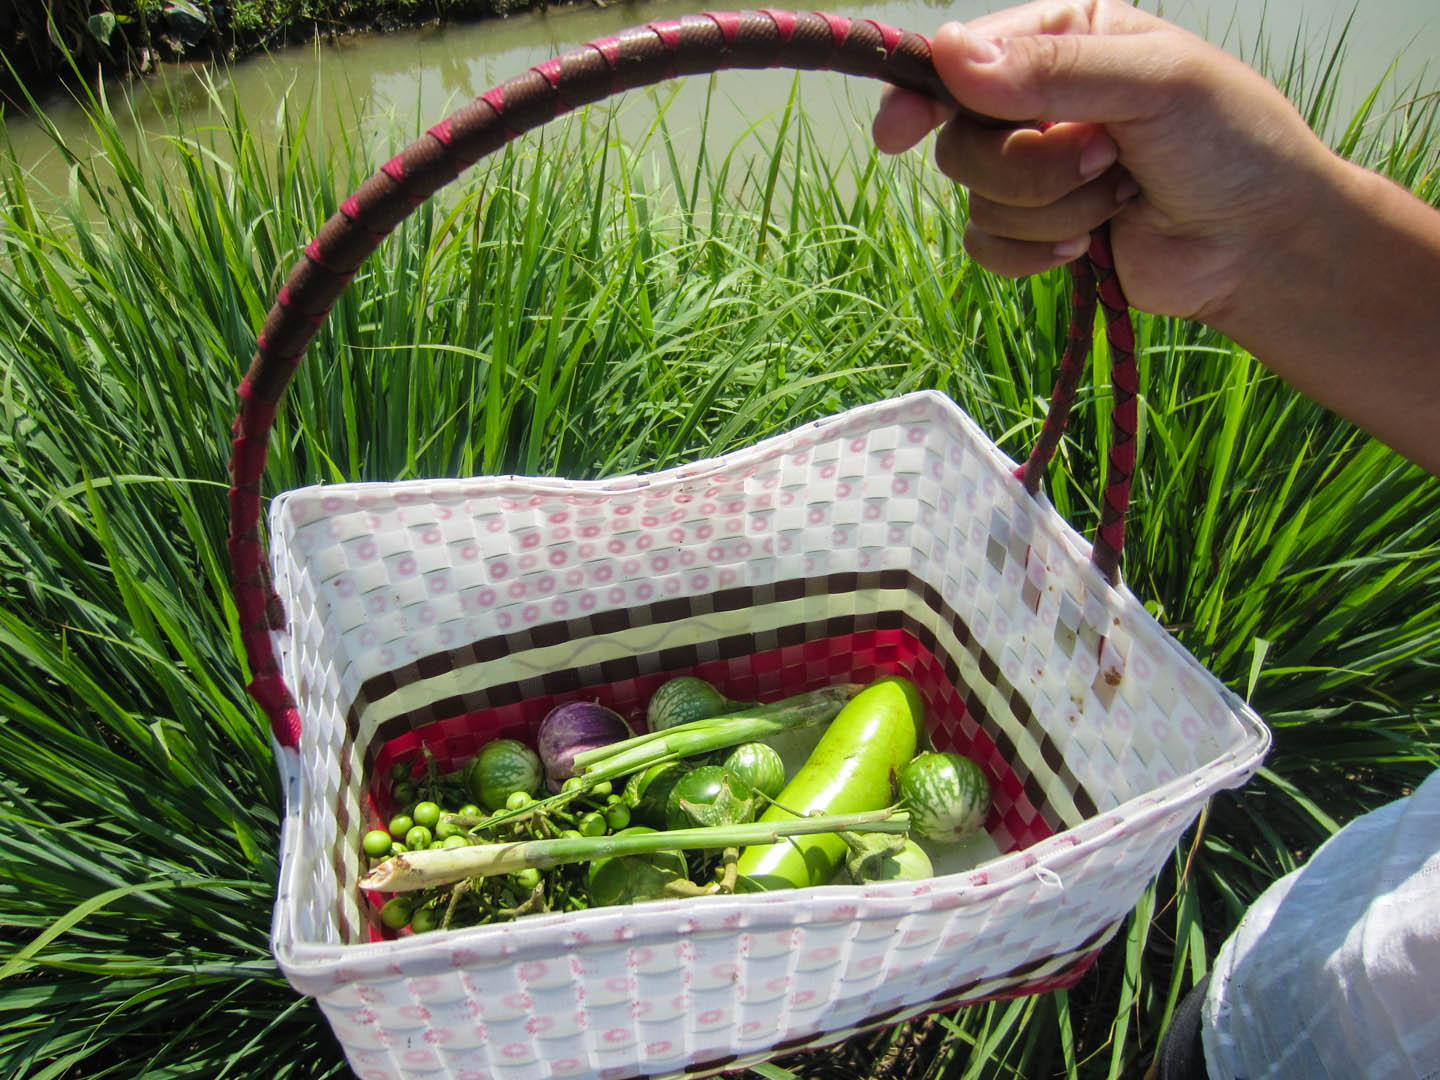 Ingredients collected from the local garden at the cooking school.